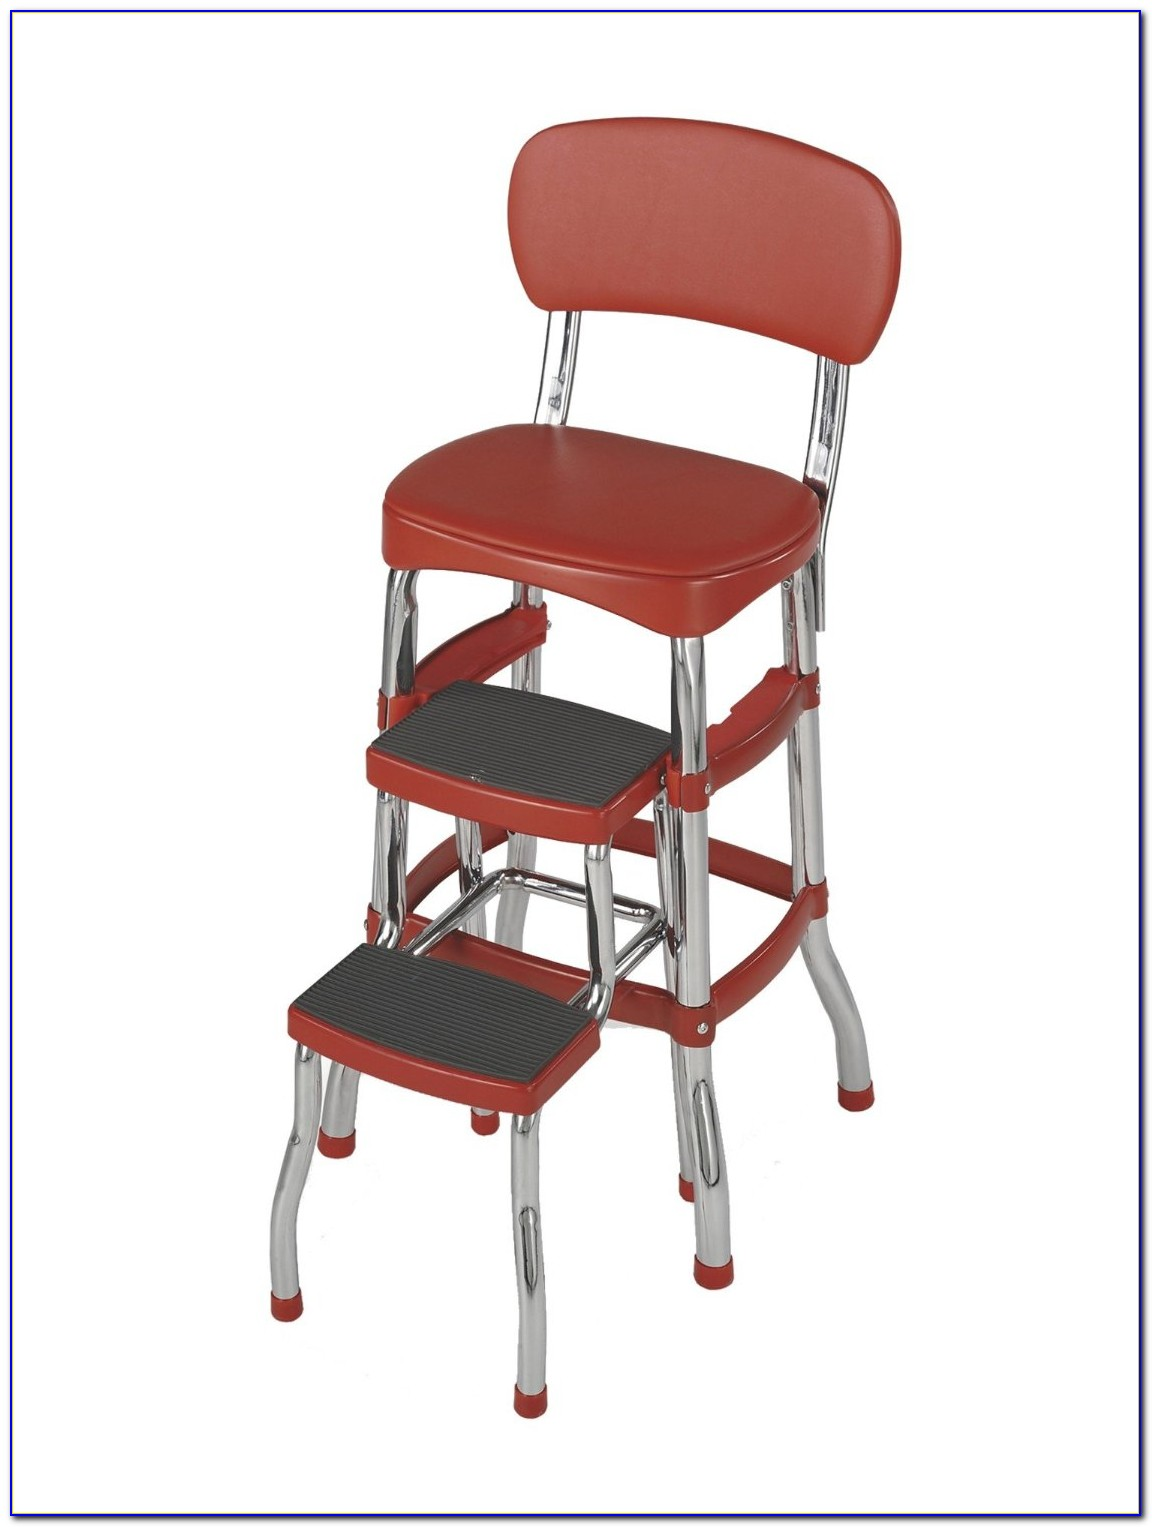 Collapsible Step Stool Chair